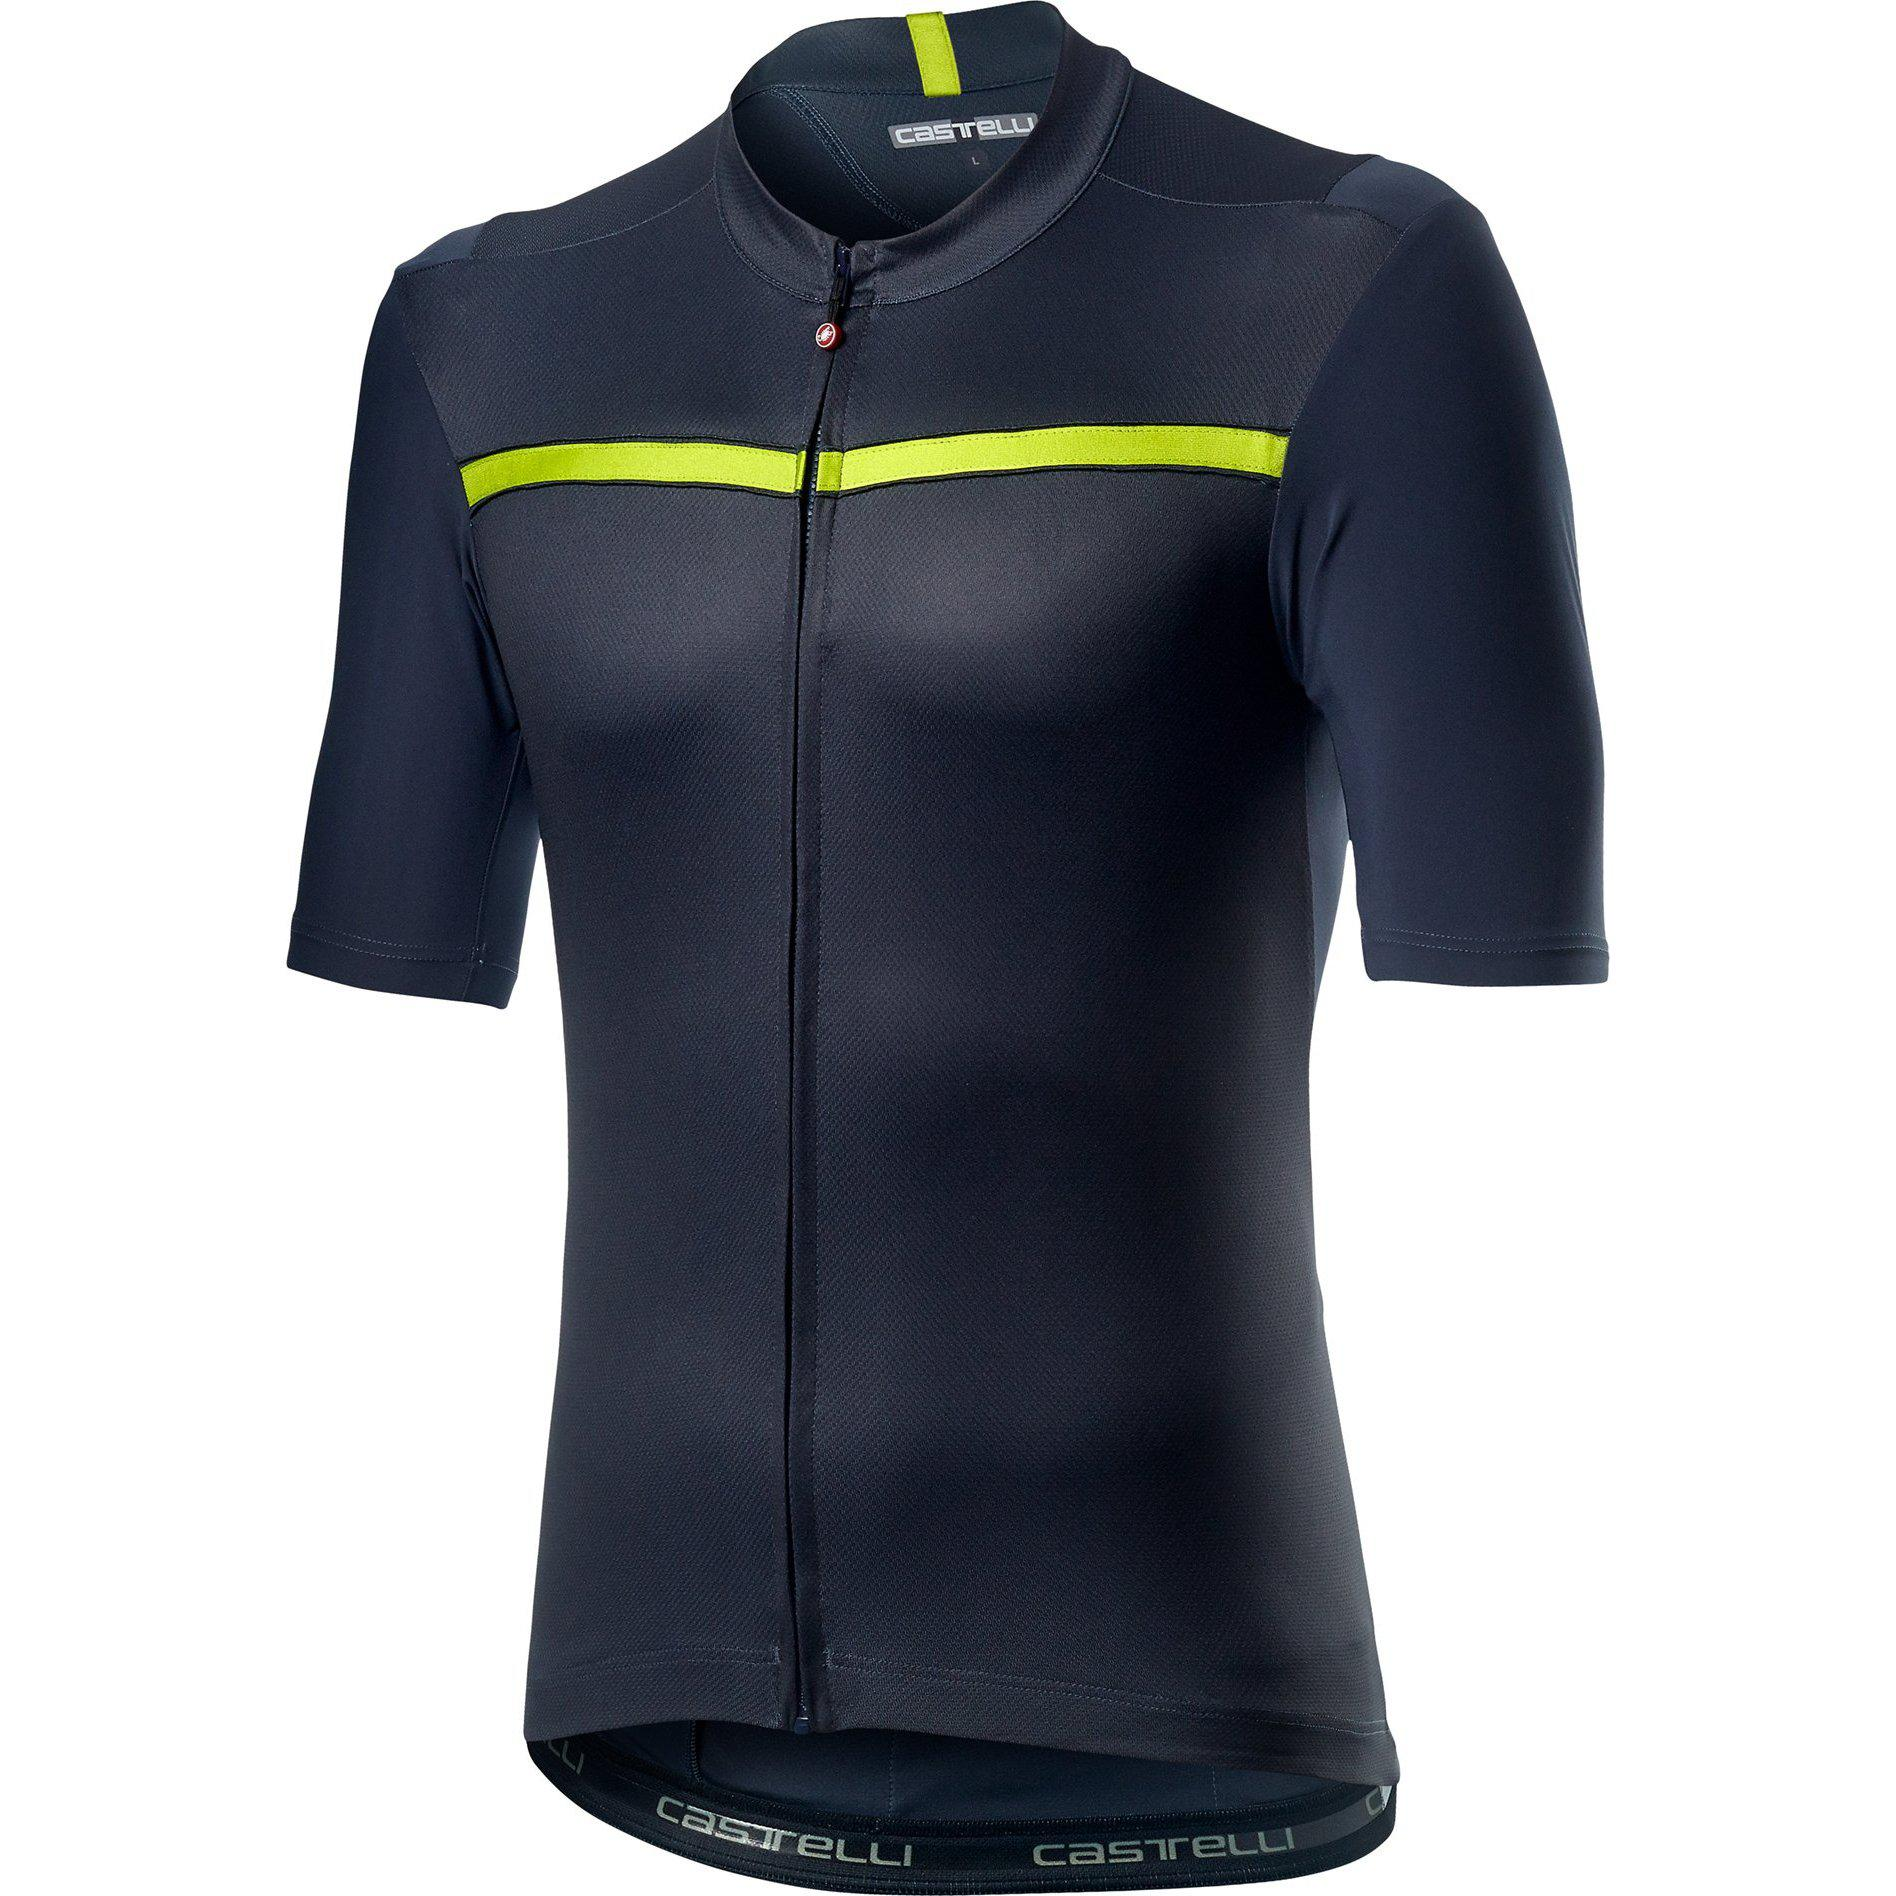 Castelli-Castelli Unlimited Jersey-Dark Steel Blue-XS-CS200230701-saddleback-elite-performance-cycling